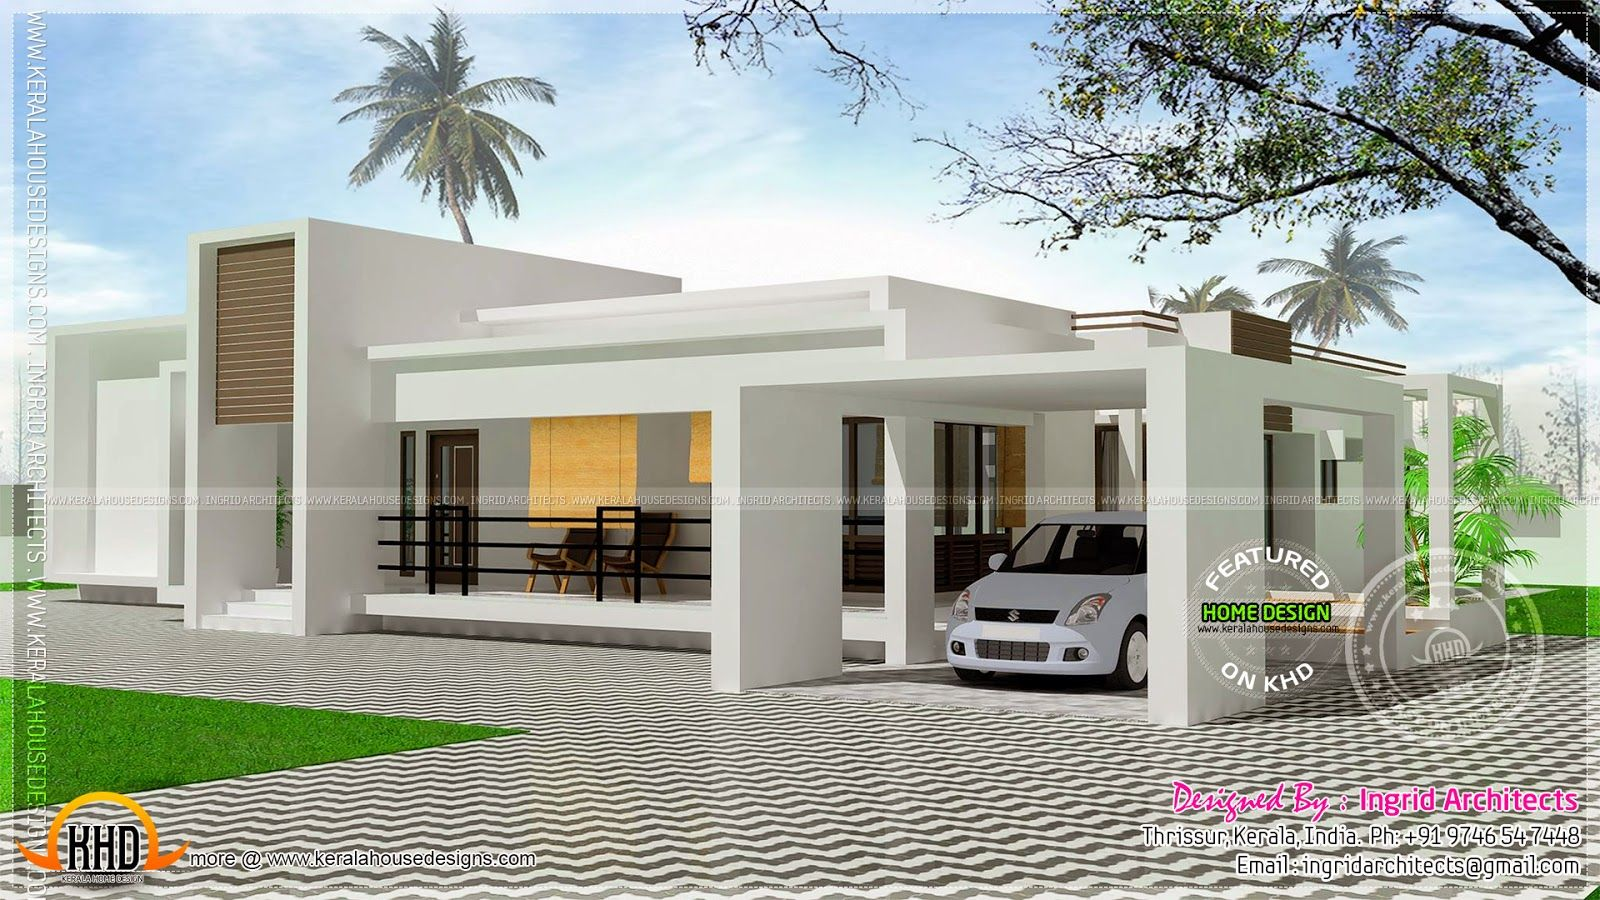 Elevations of single storey residential buildings google for Best new home ideas